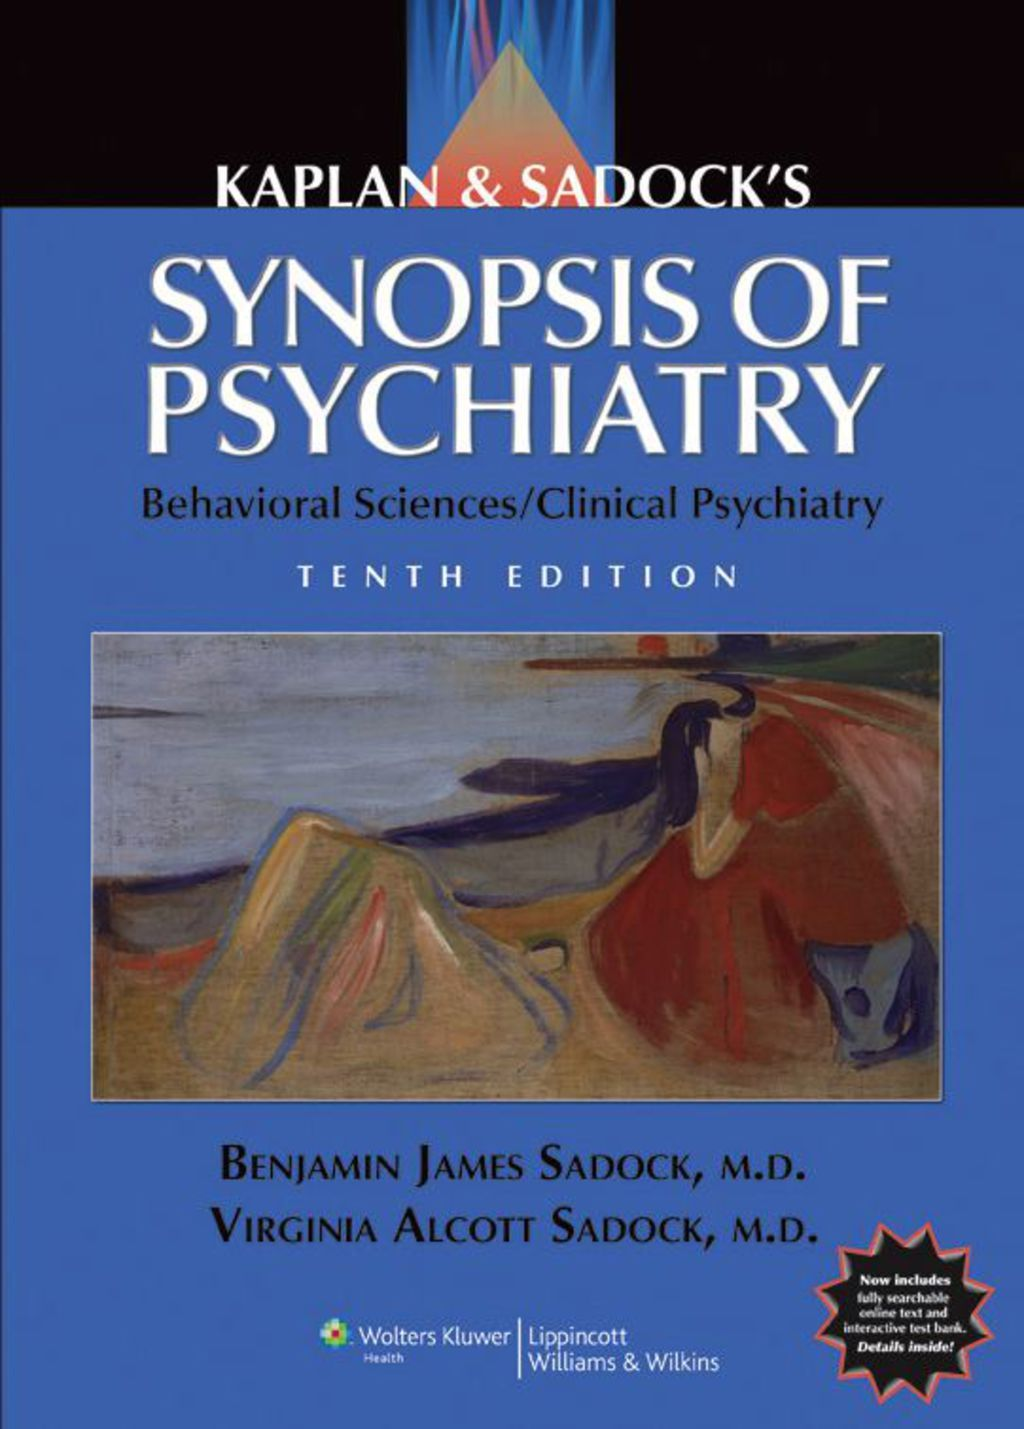 Synopsis Of Psychiatry Ebook